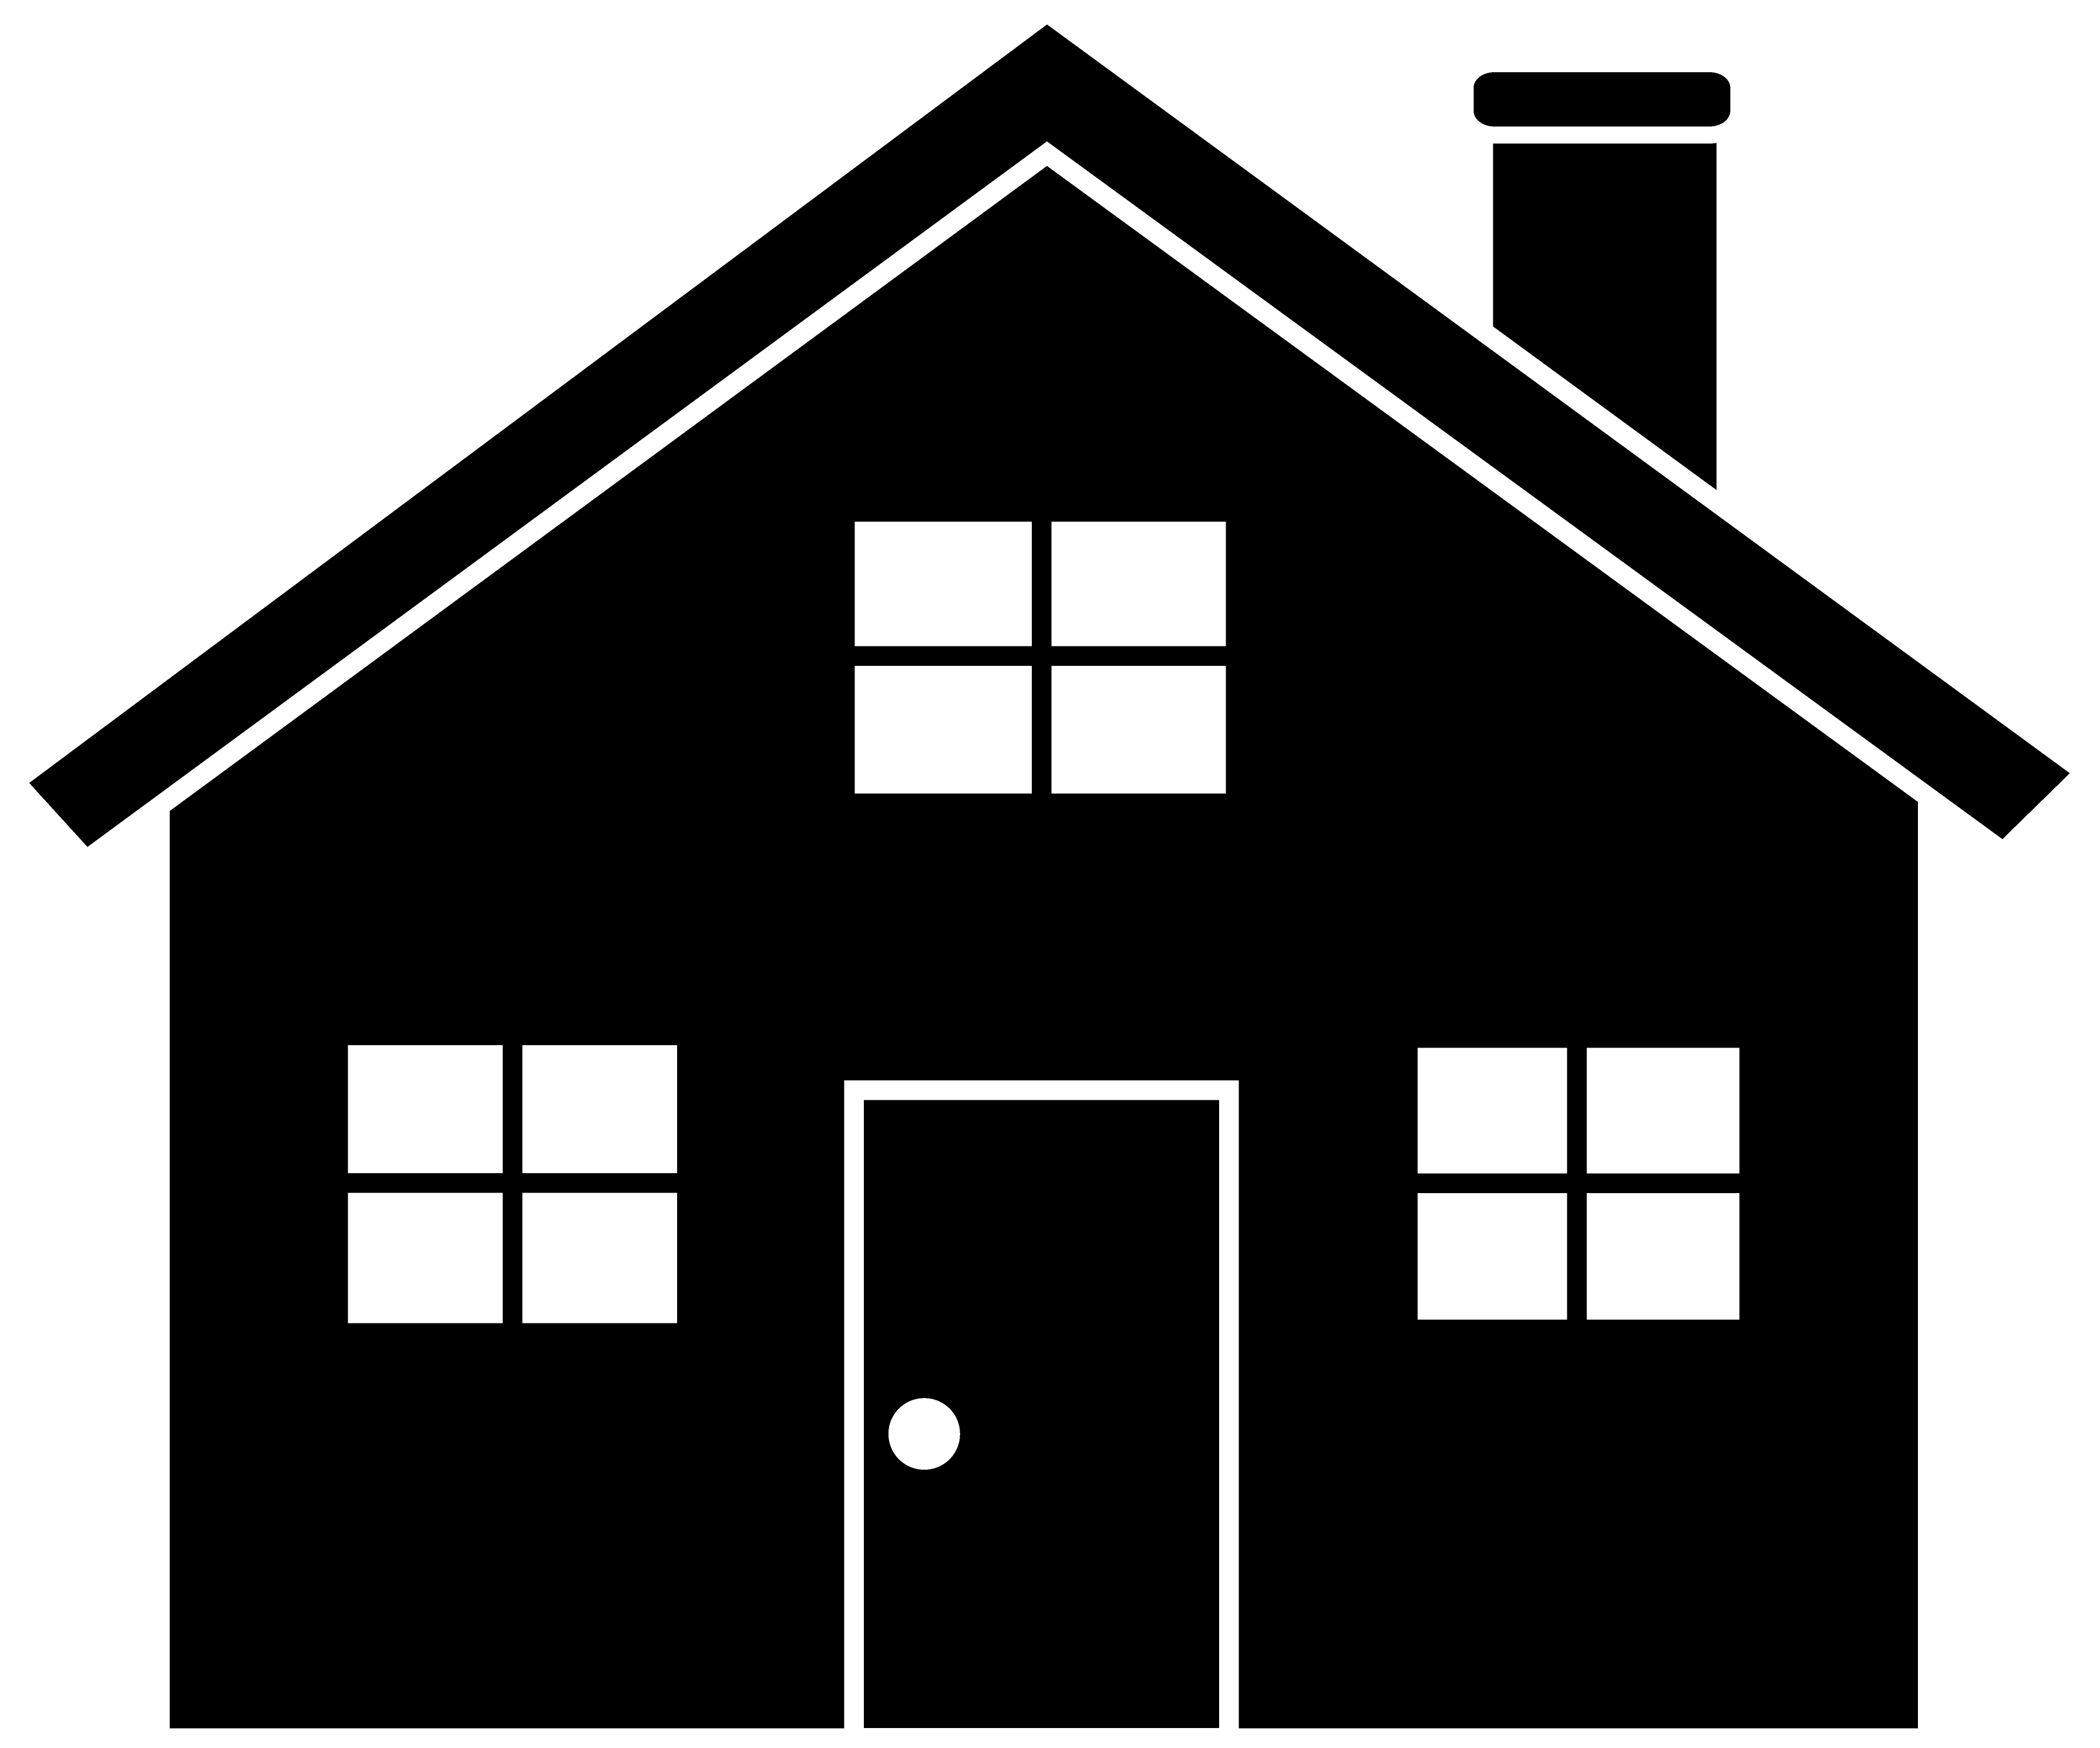 Inside house clipart black and white clip art transparent stock House Clipart | jokingart.com House Clipart clip art transparent stock